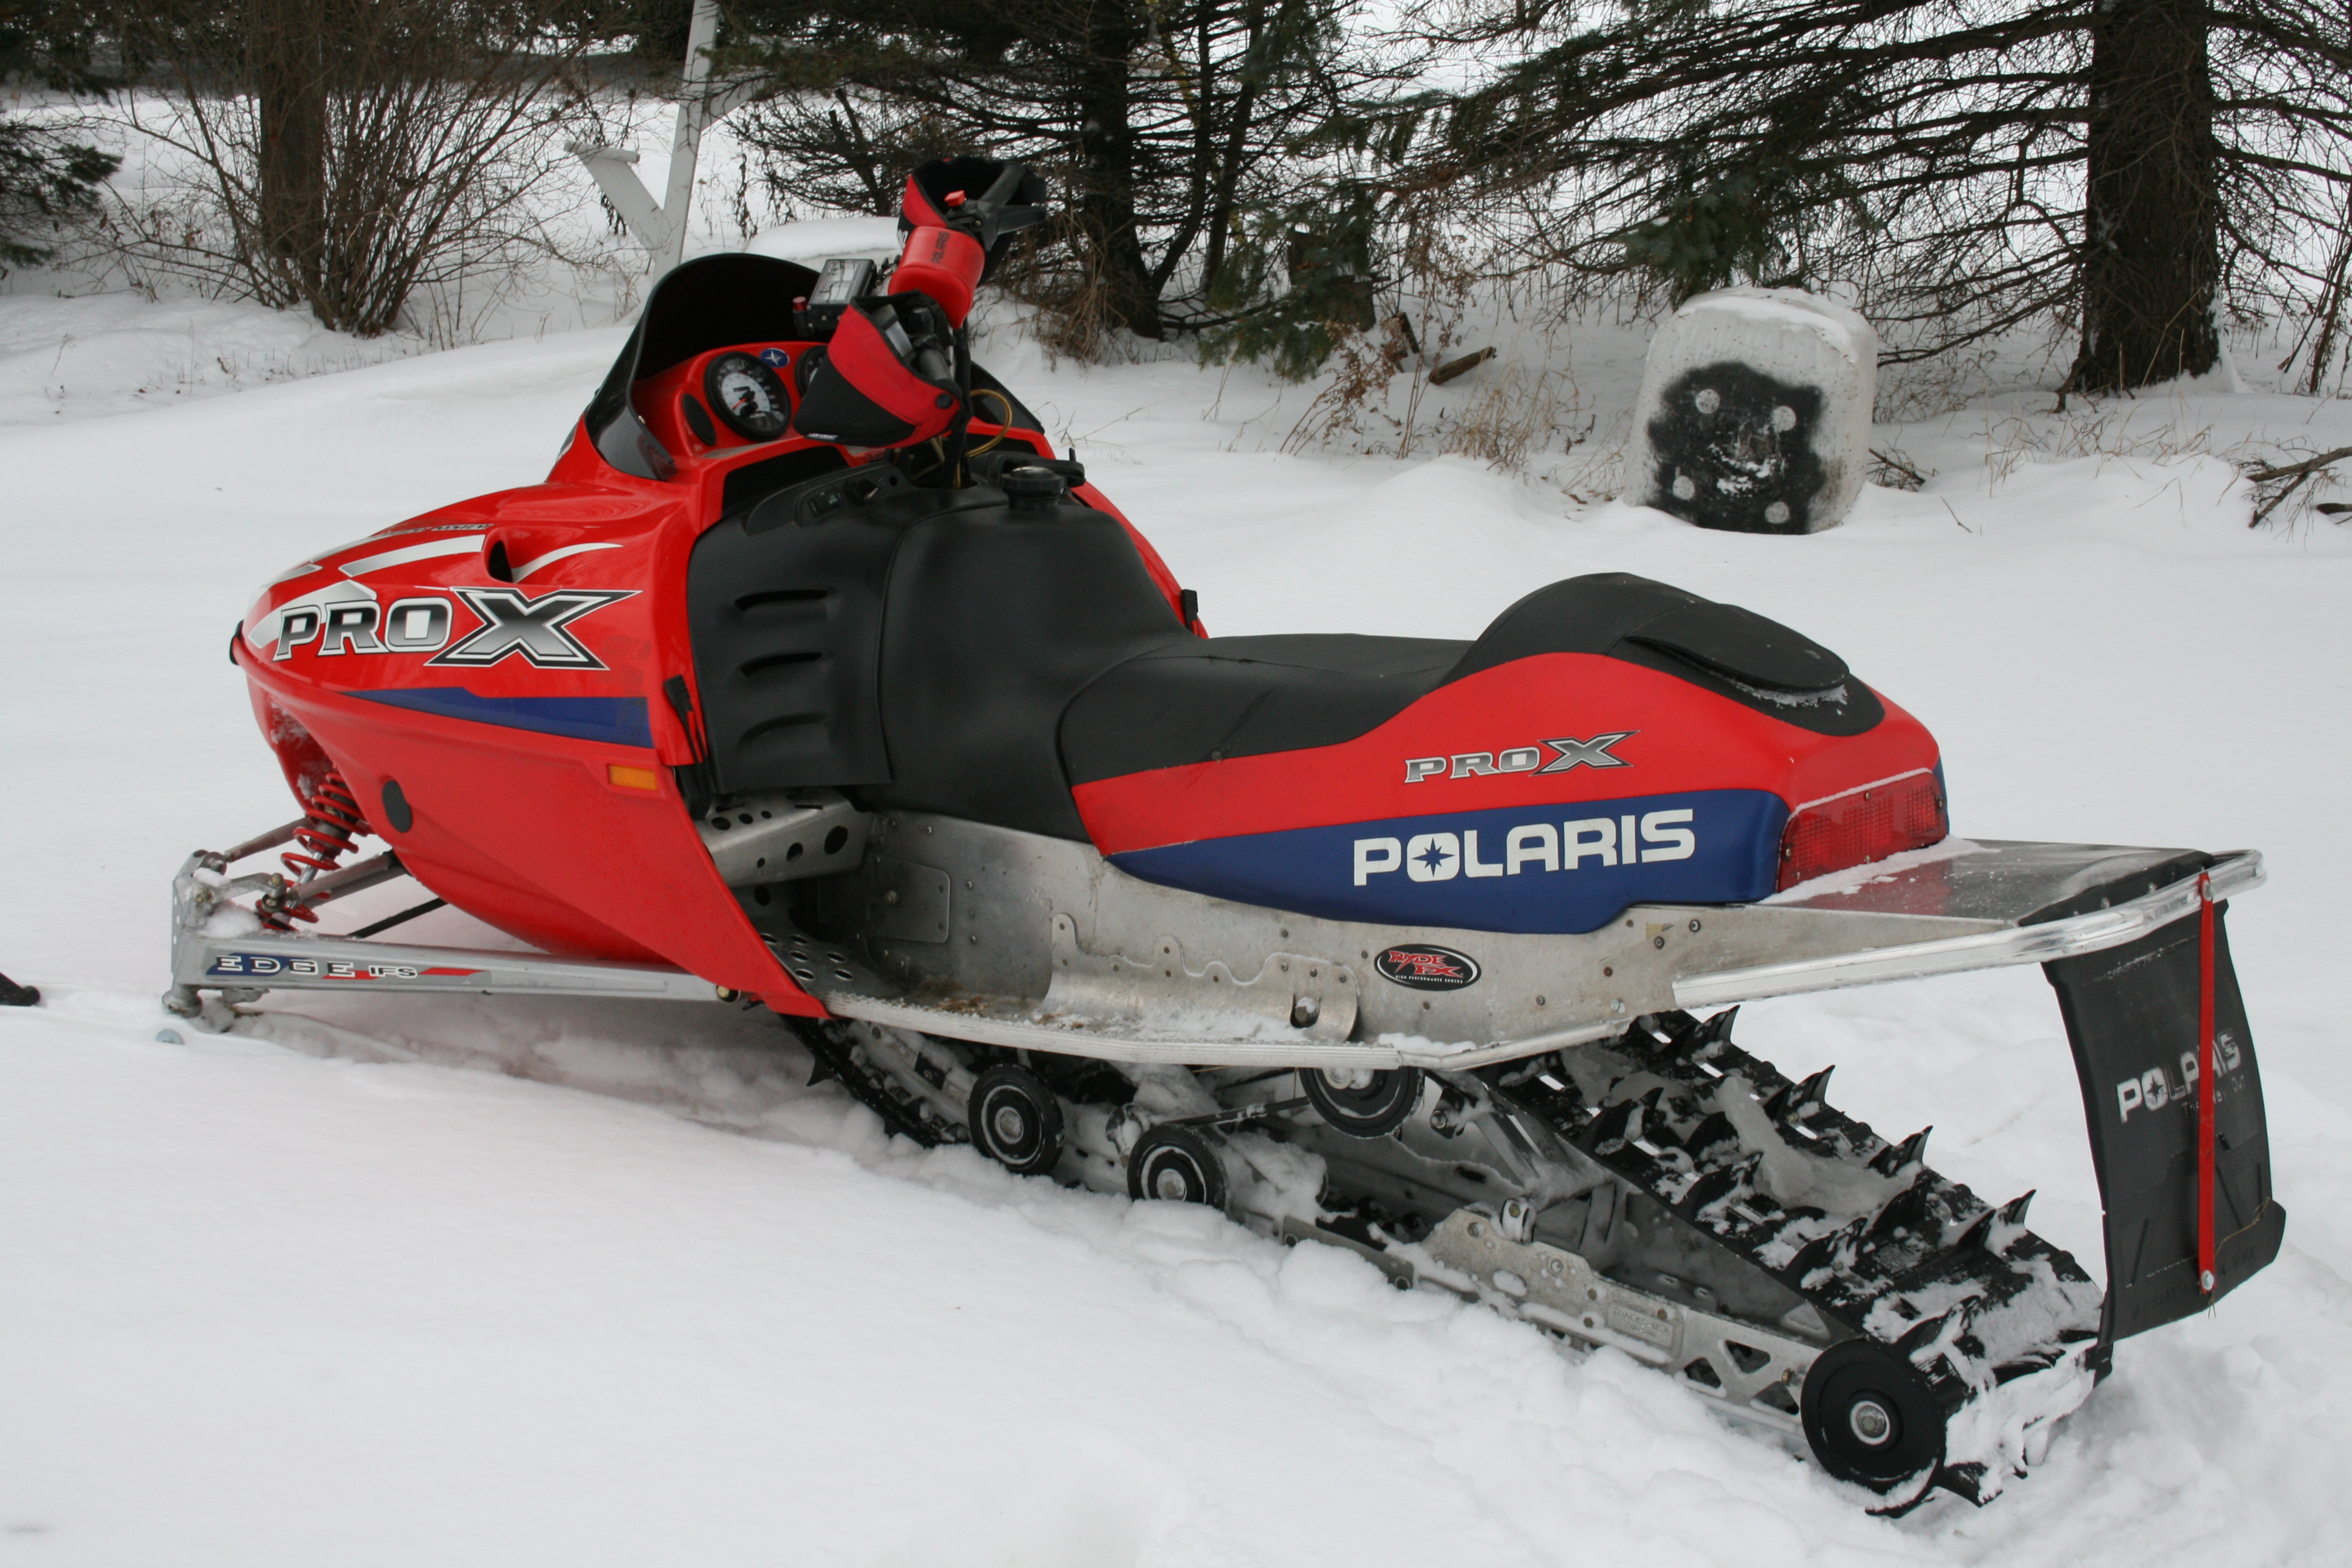 Craigslist green bay wi snowmobiles bing images